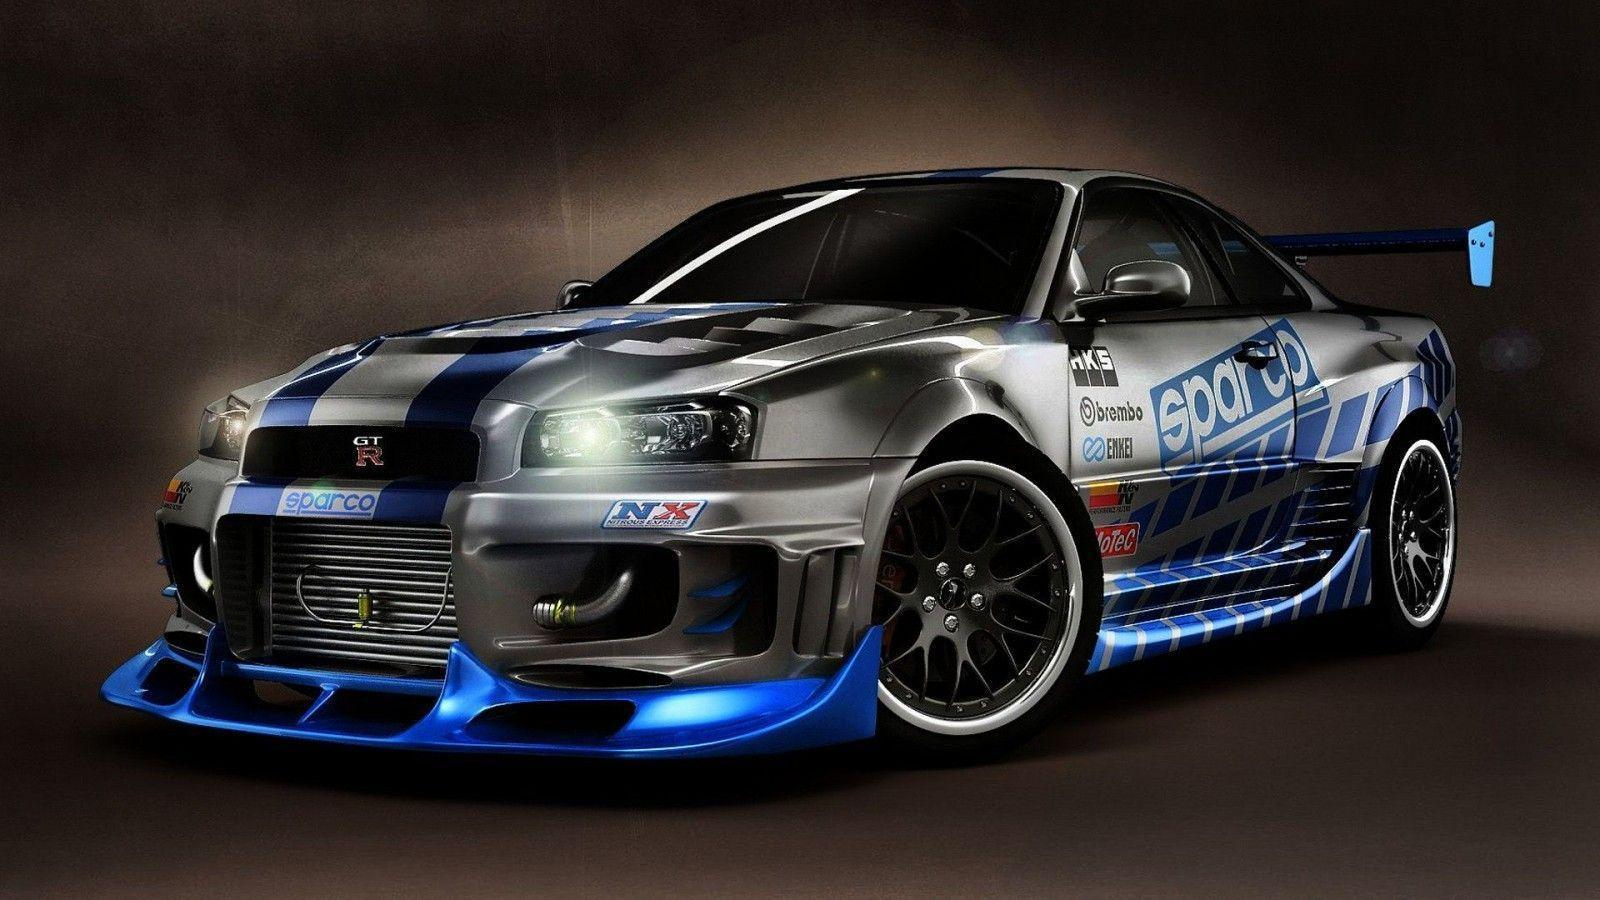 fast and furious cars skyline new nissan car photos - Fast And Furious Cars Skyline